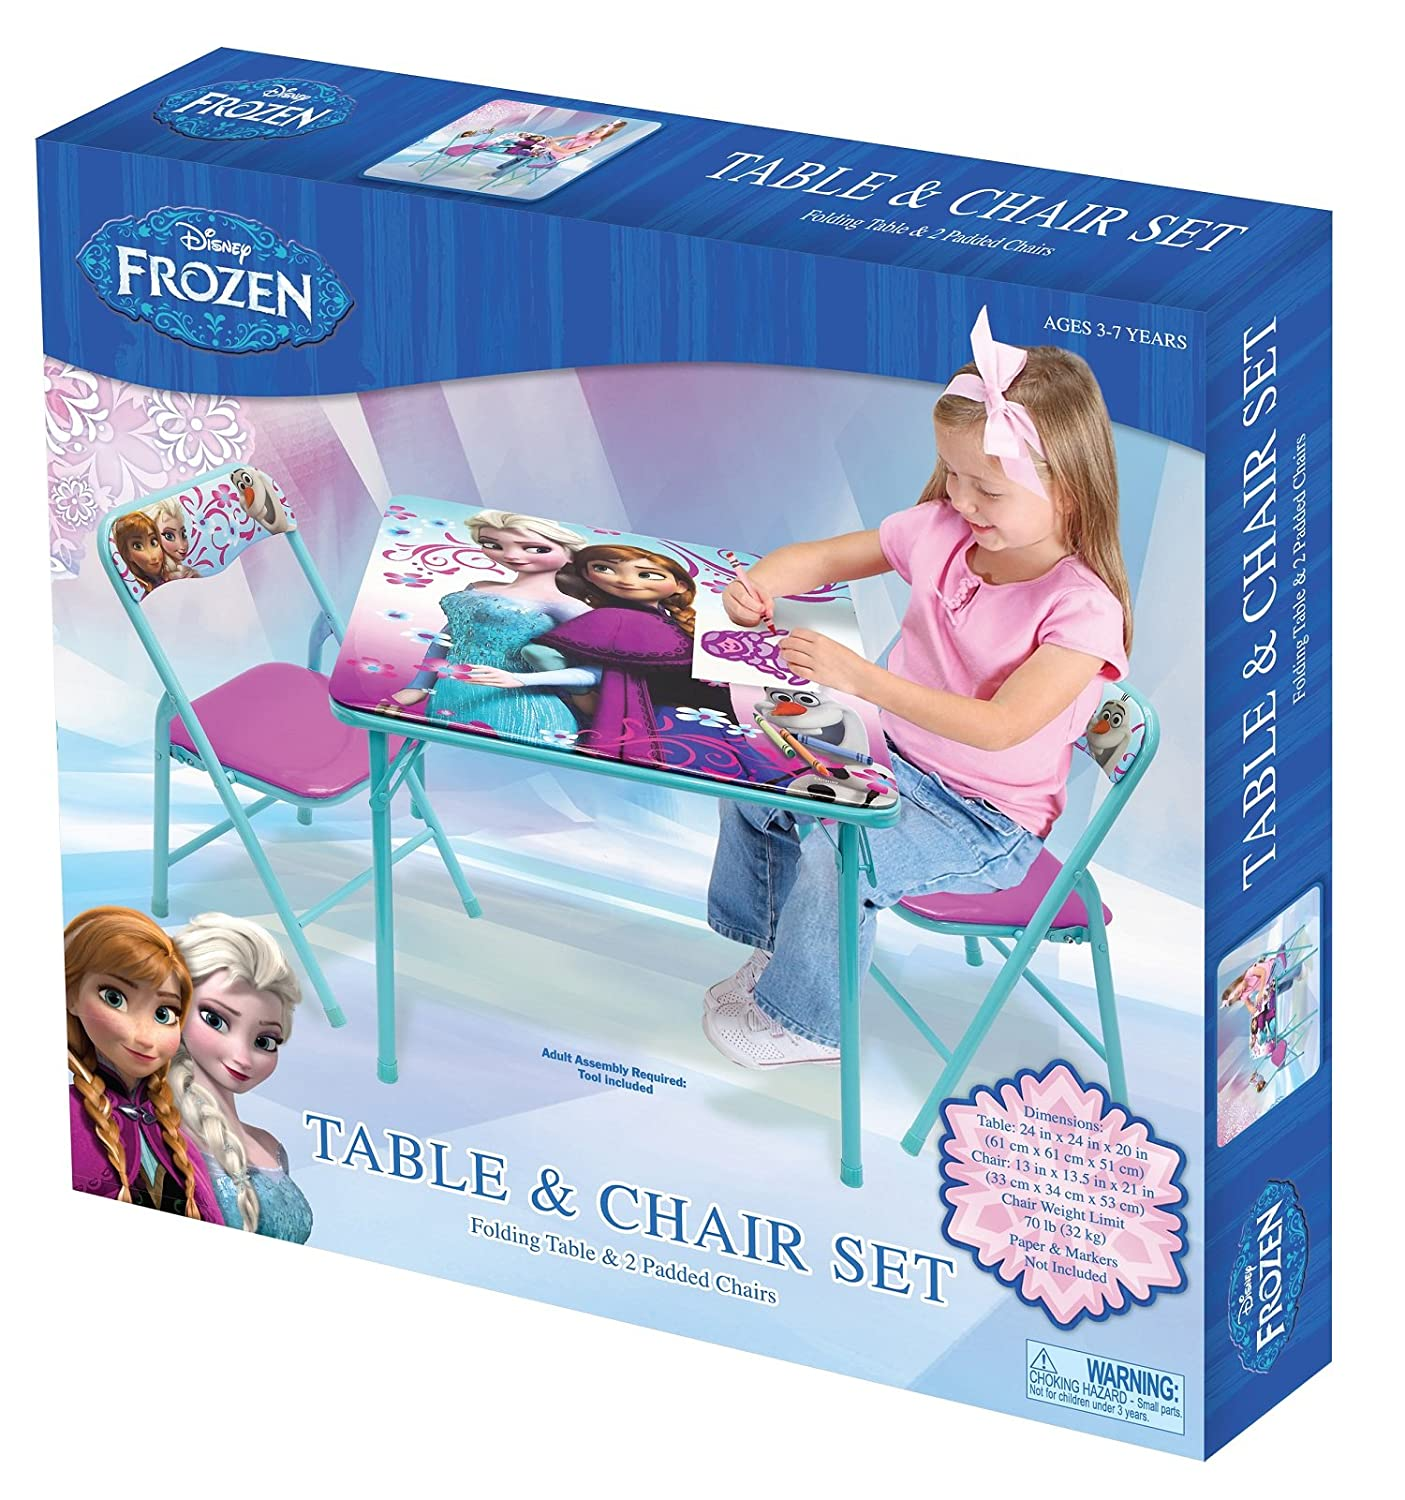 Amazon Frozen Activity Table Set Toys & Games